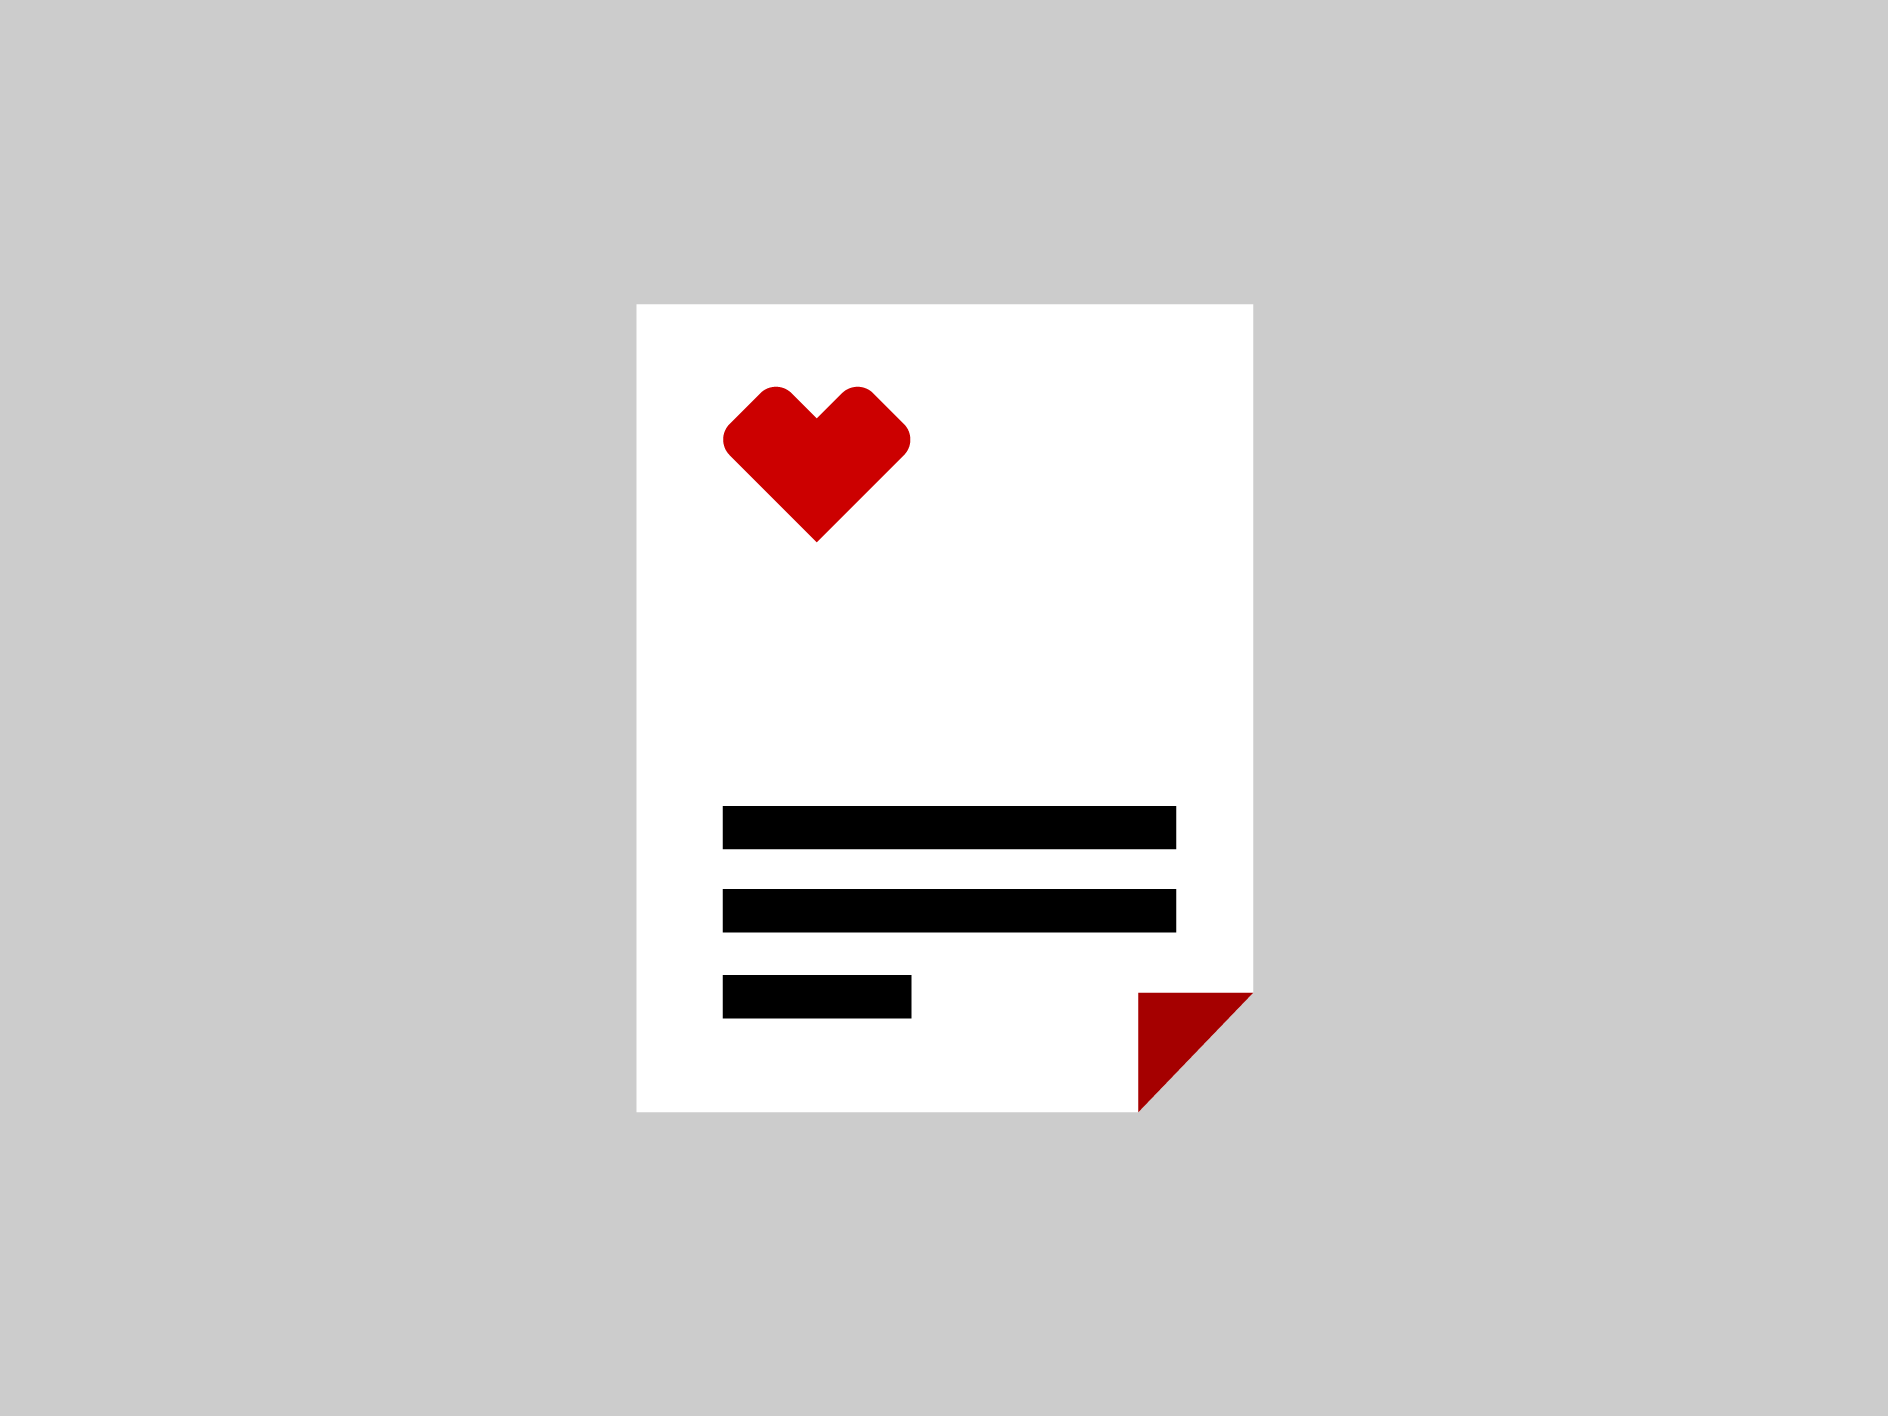 A pictogram representing a document.